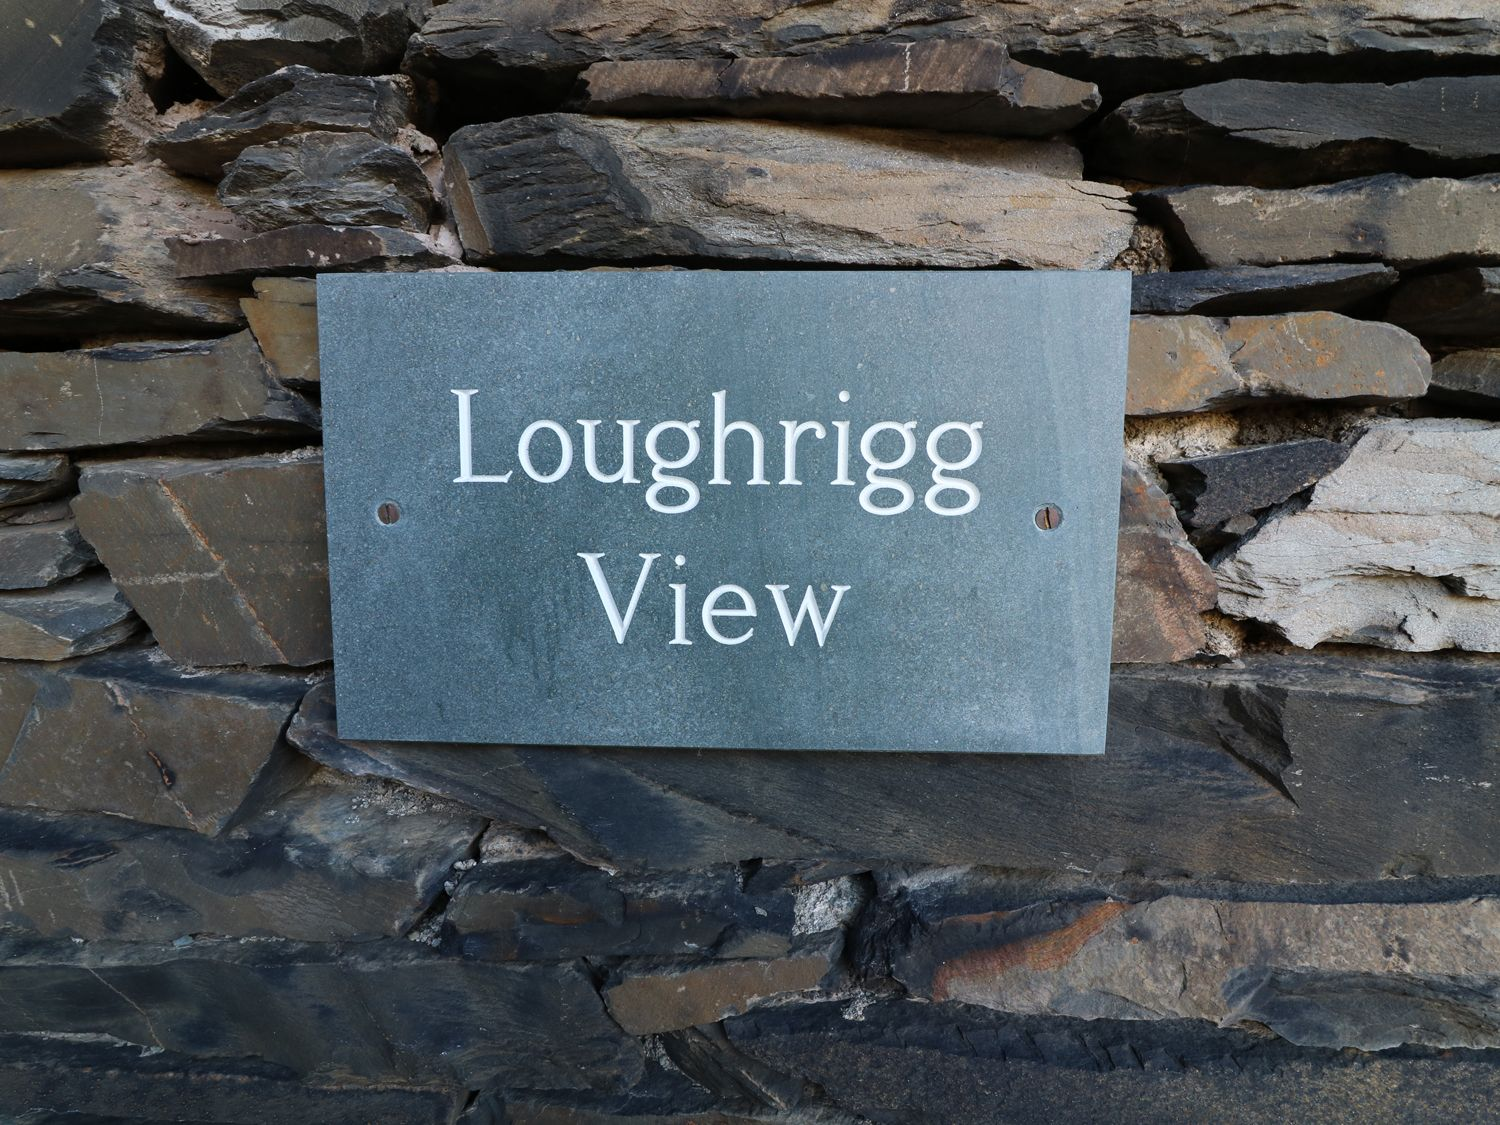 Loughrigg View photo 1